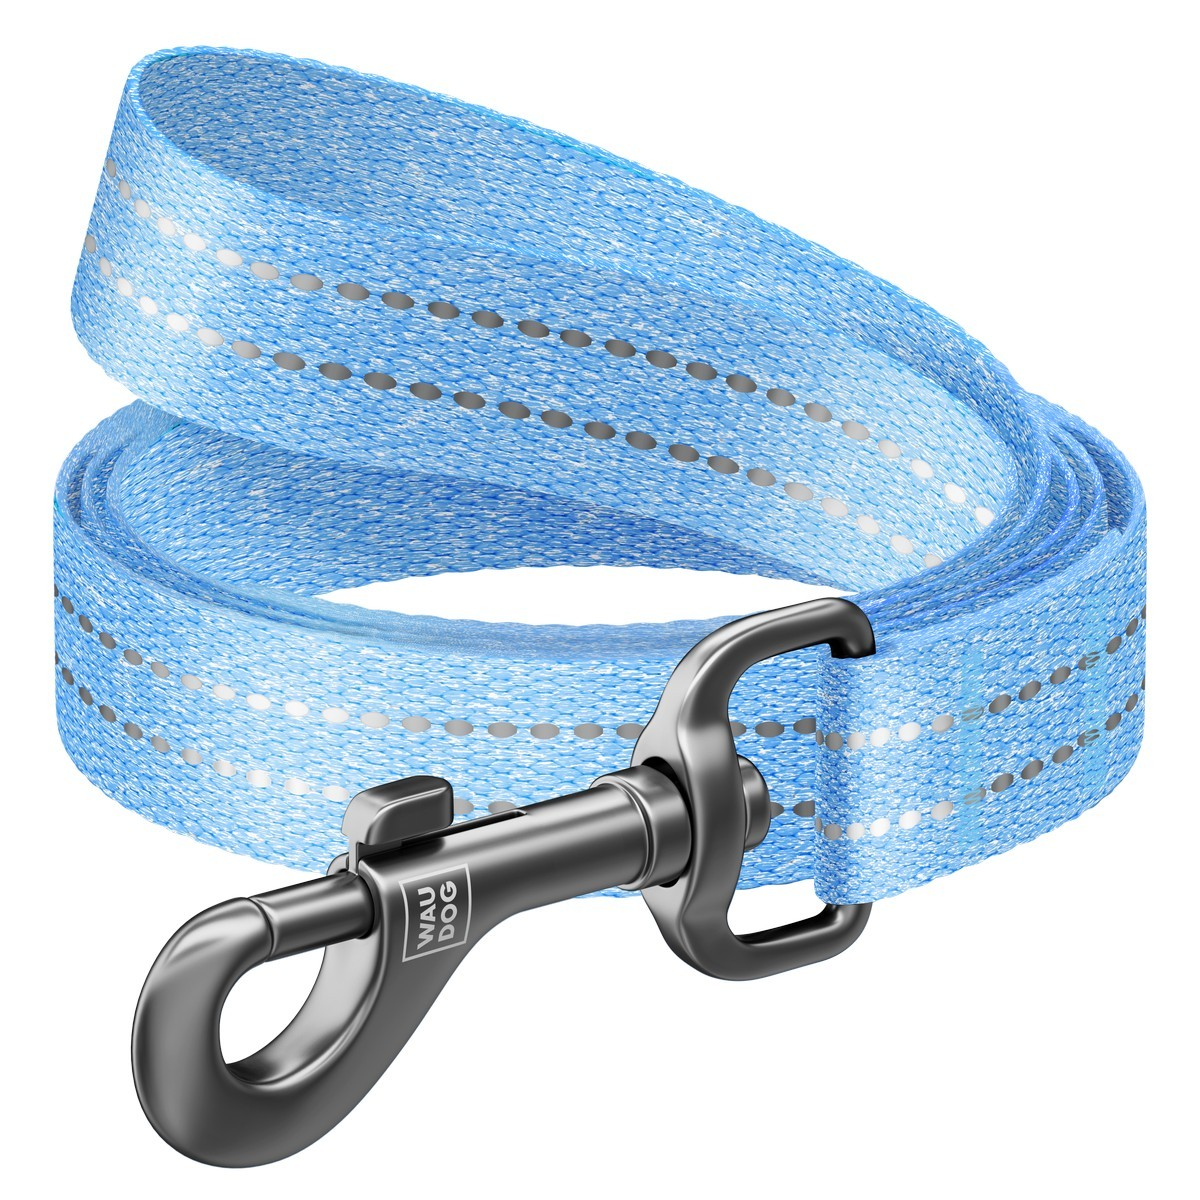 WAUDOG Re-cotton leash from recycled cotton, blue